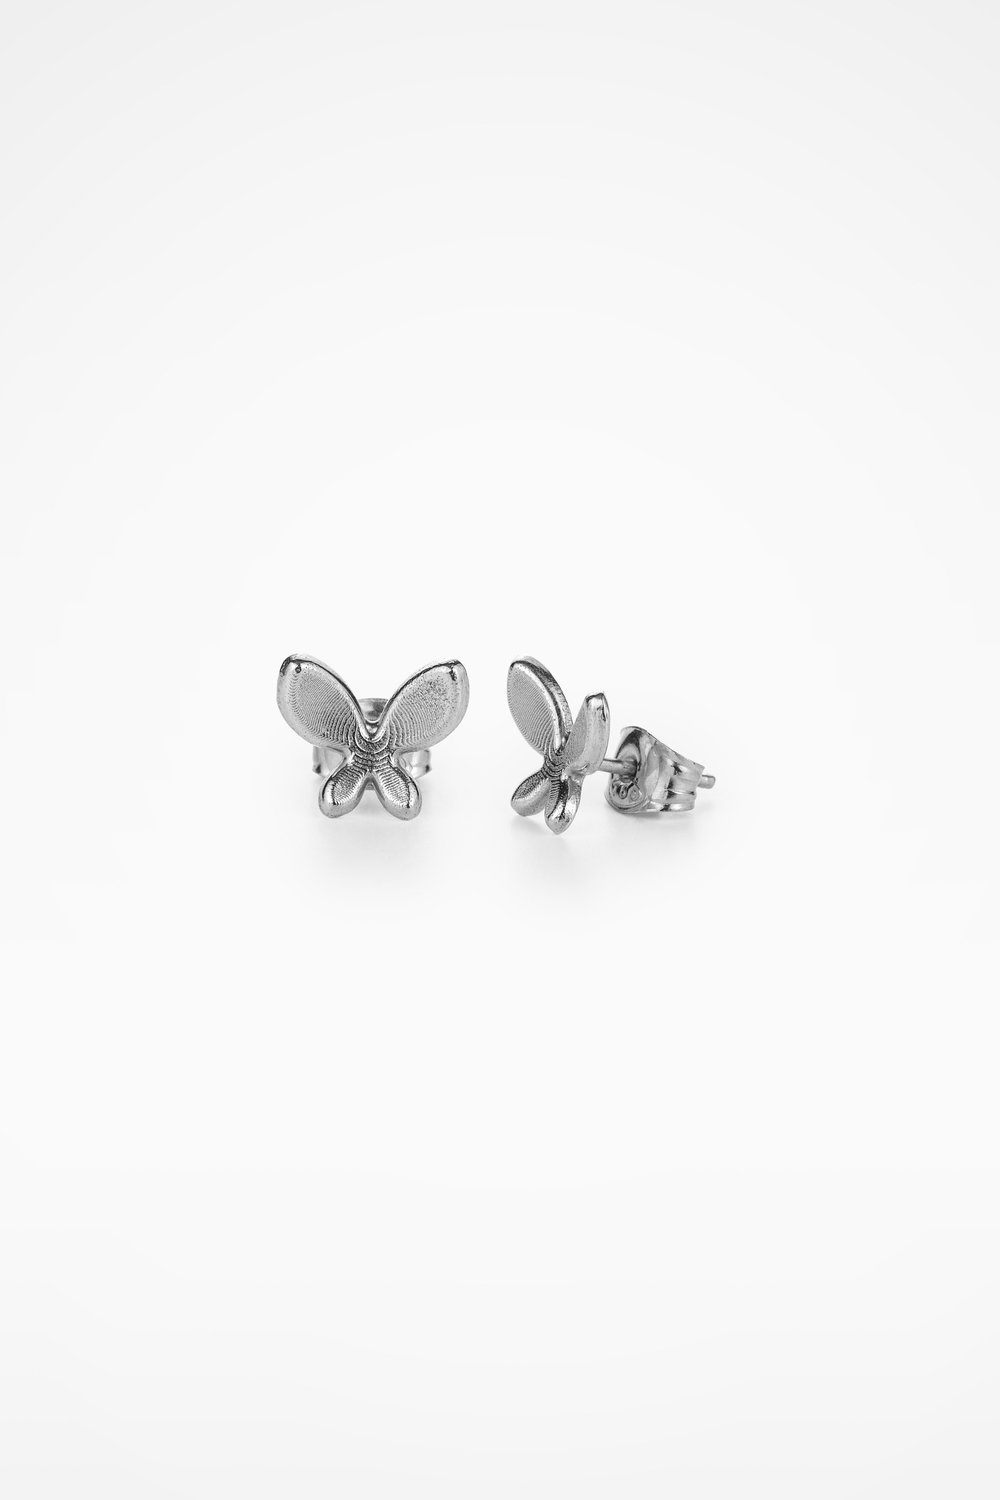 Amiral Stud Earrings Silver.jpeg